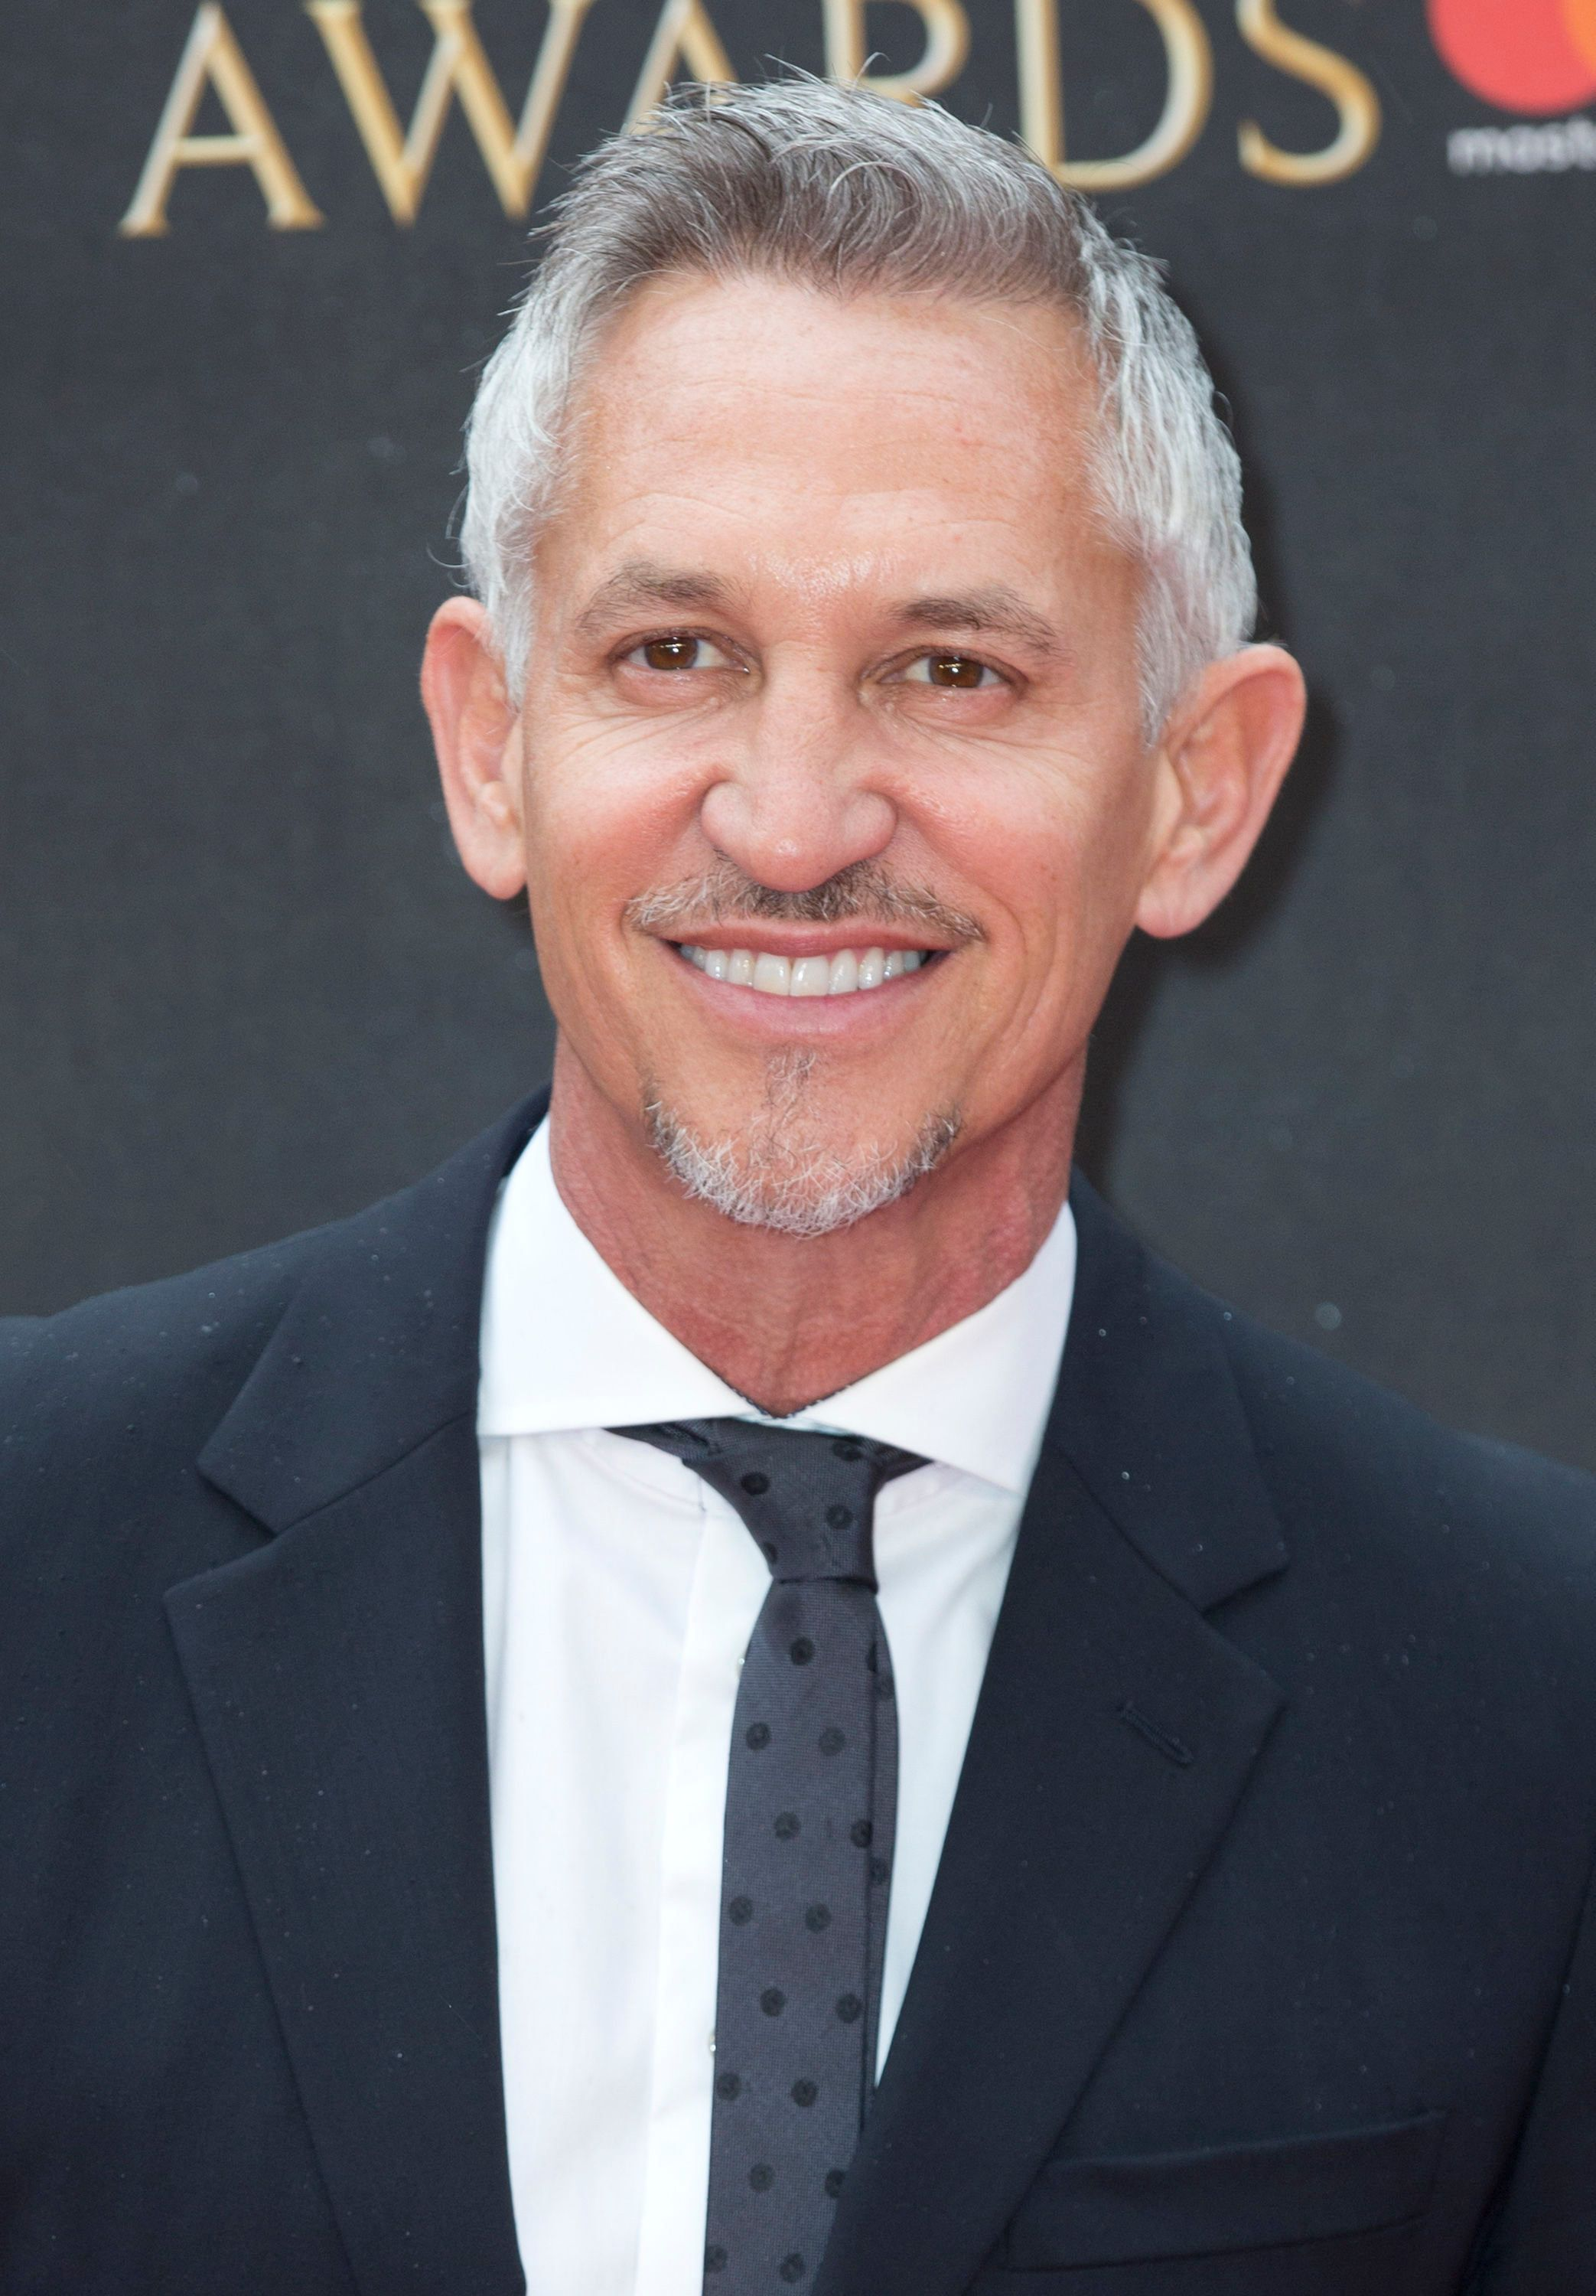 Gary Lineker Tops Male-Dominated List Of BBC's Top Earners In Latest Pay